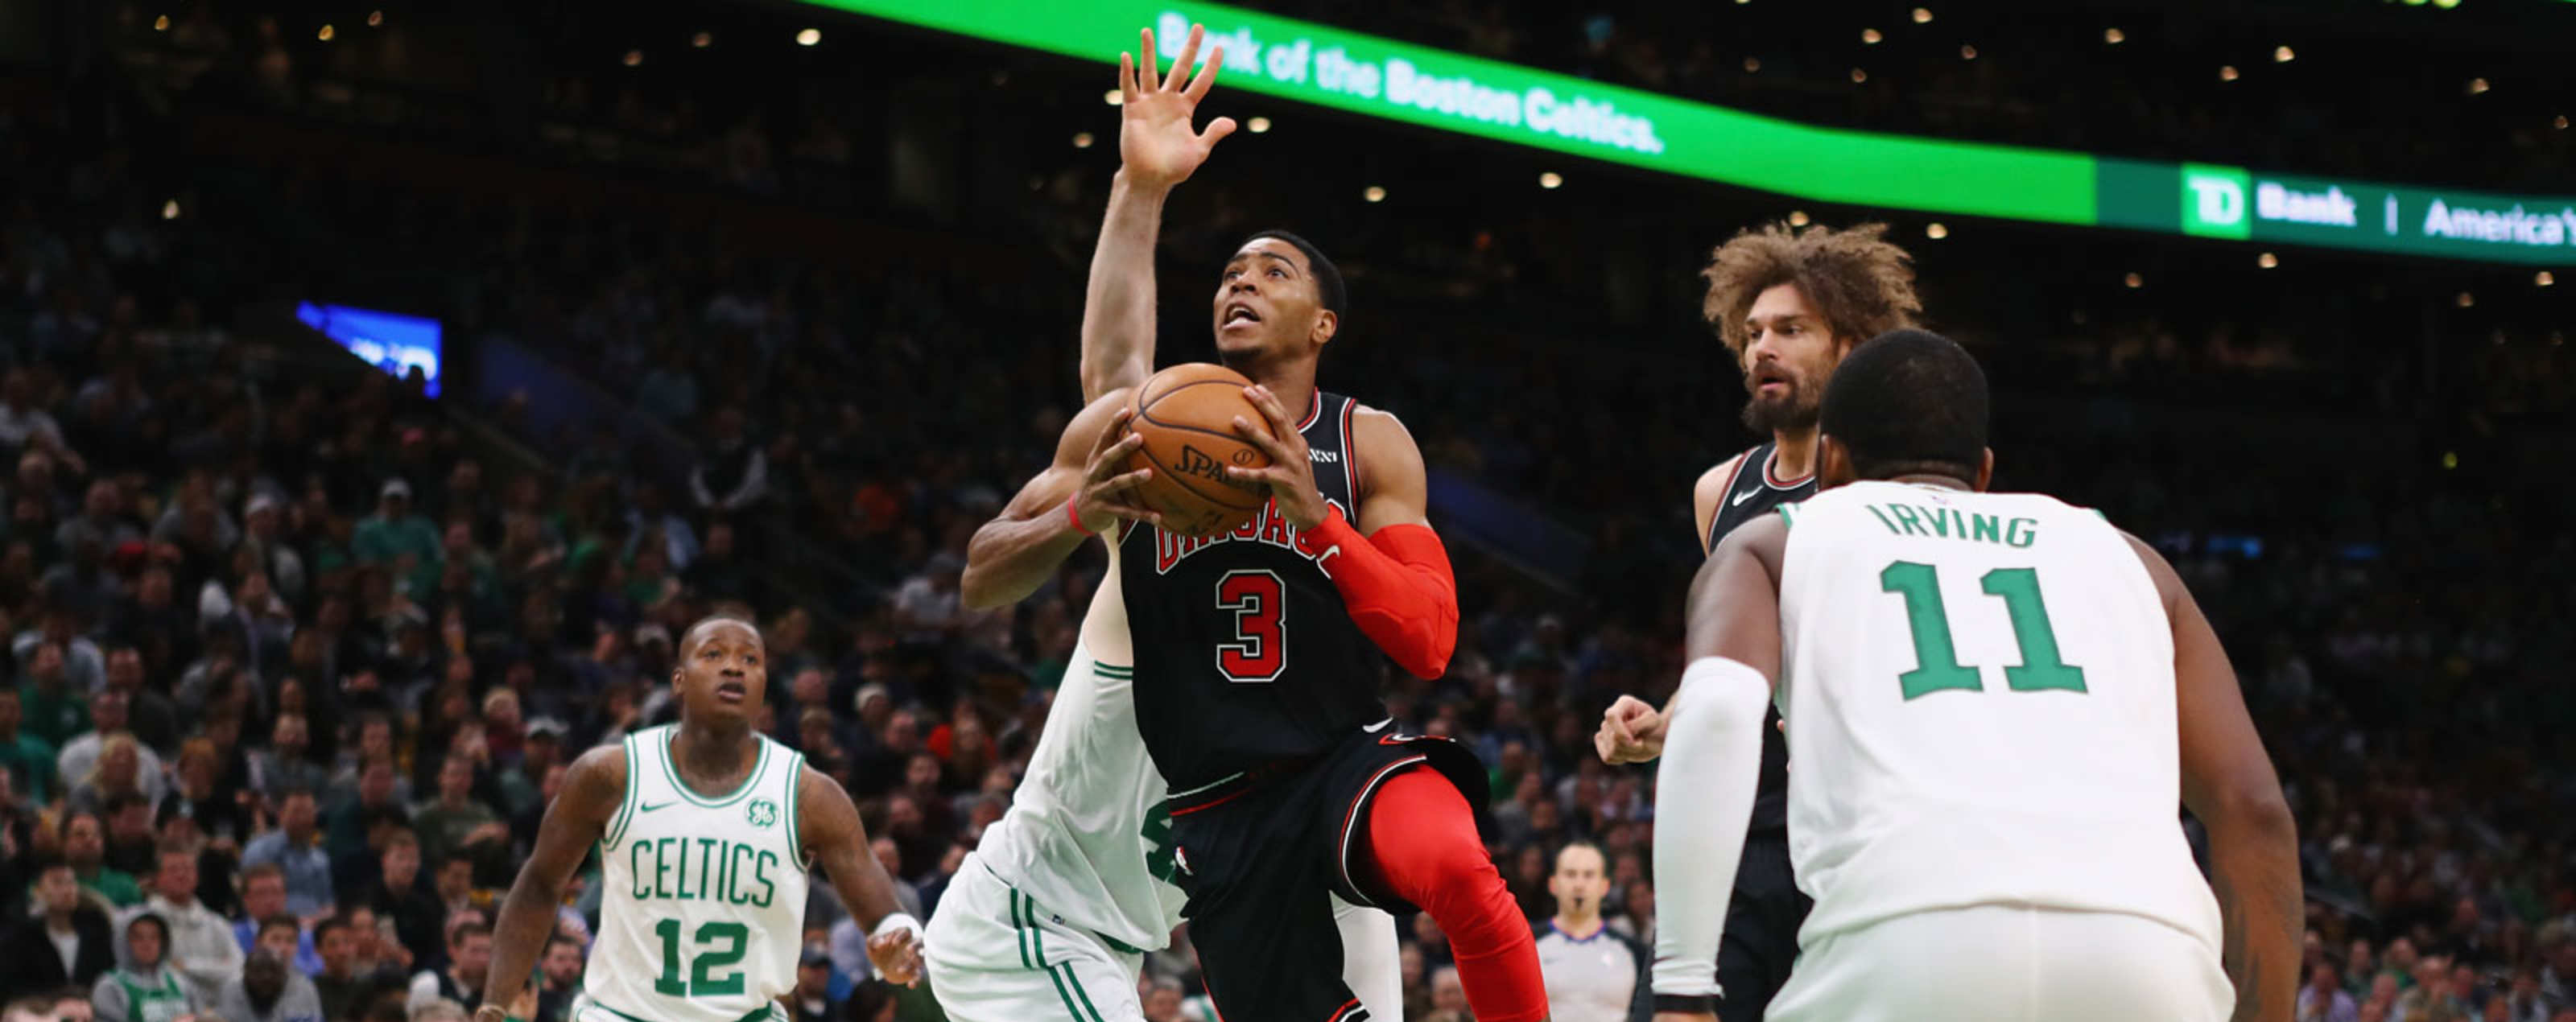 Shaquille Harrison #3 of the Chicago Bulls drives to the basket during the second half against the Boston Celtics at TD Garden on November 14, 2018 in Boston, Massachusetts.